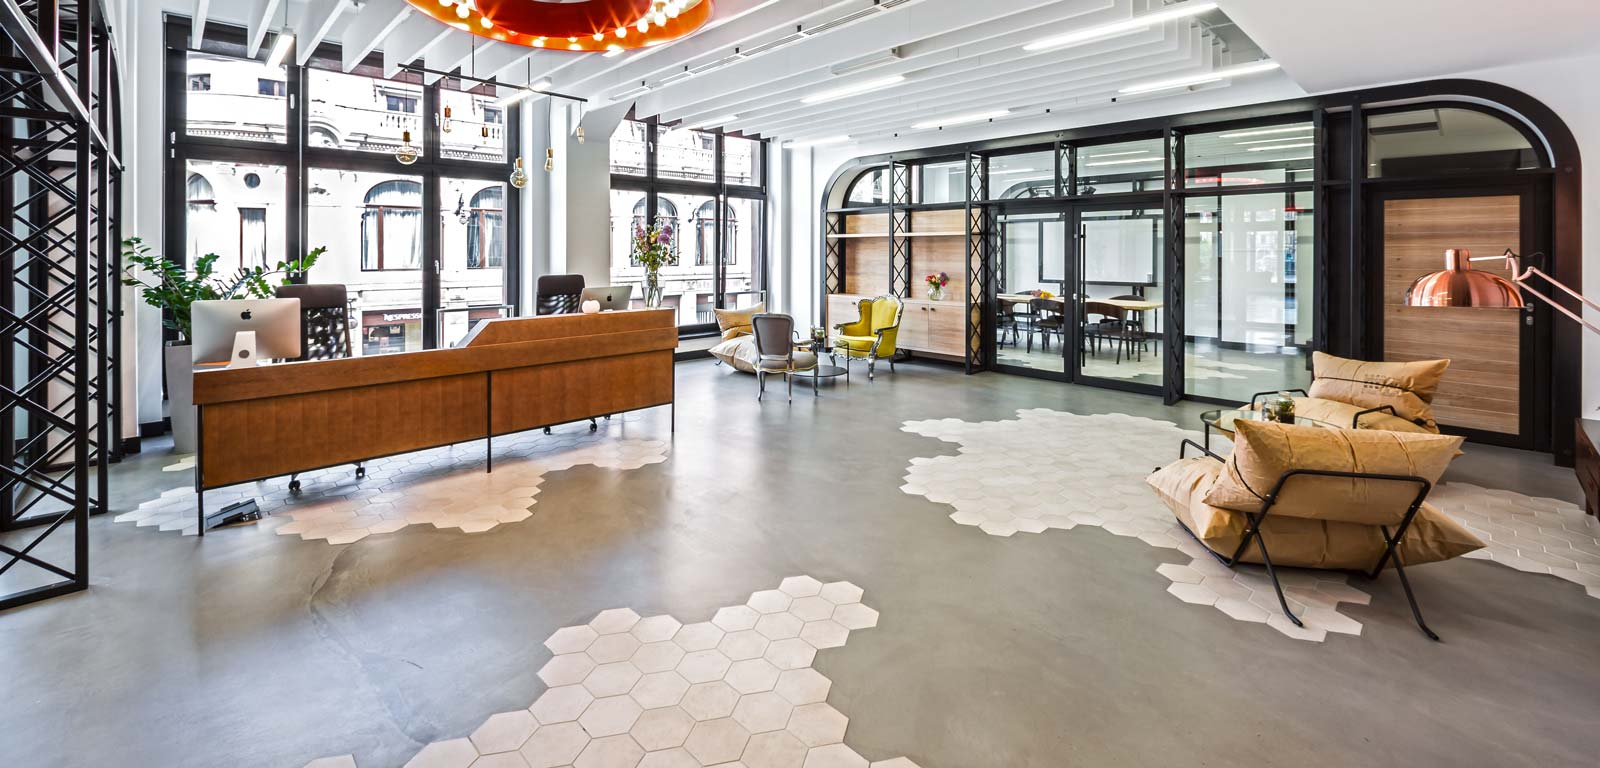 Industrial design hexagonal tiles rewind ragno for Best office design in the world